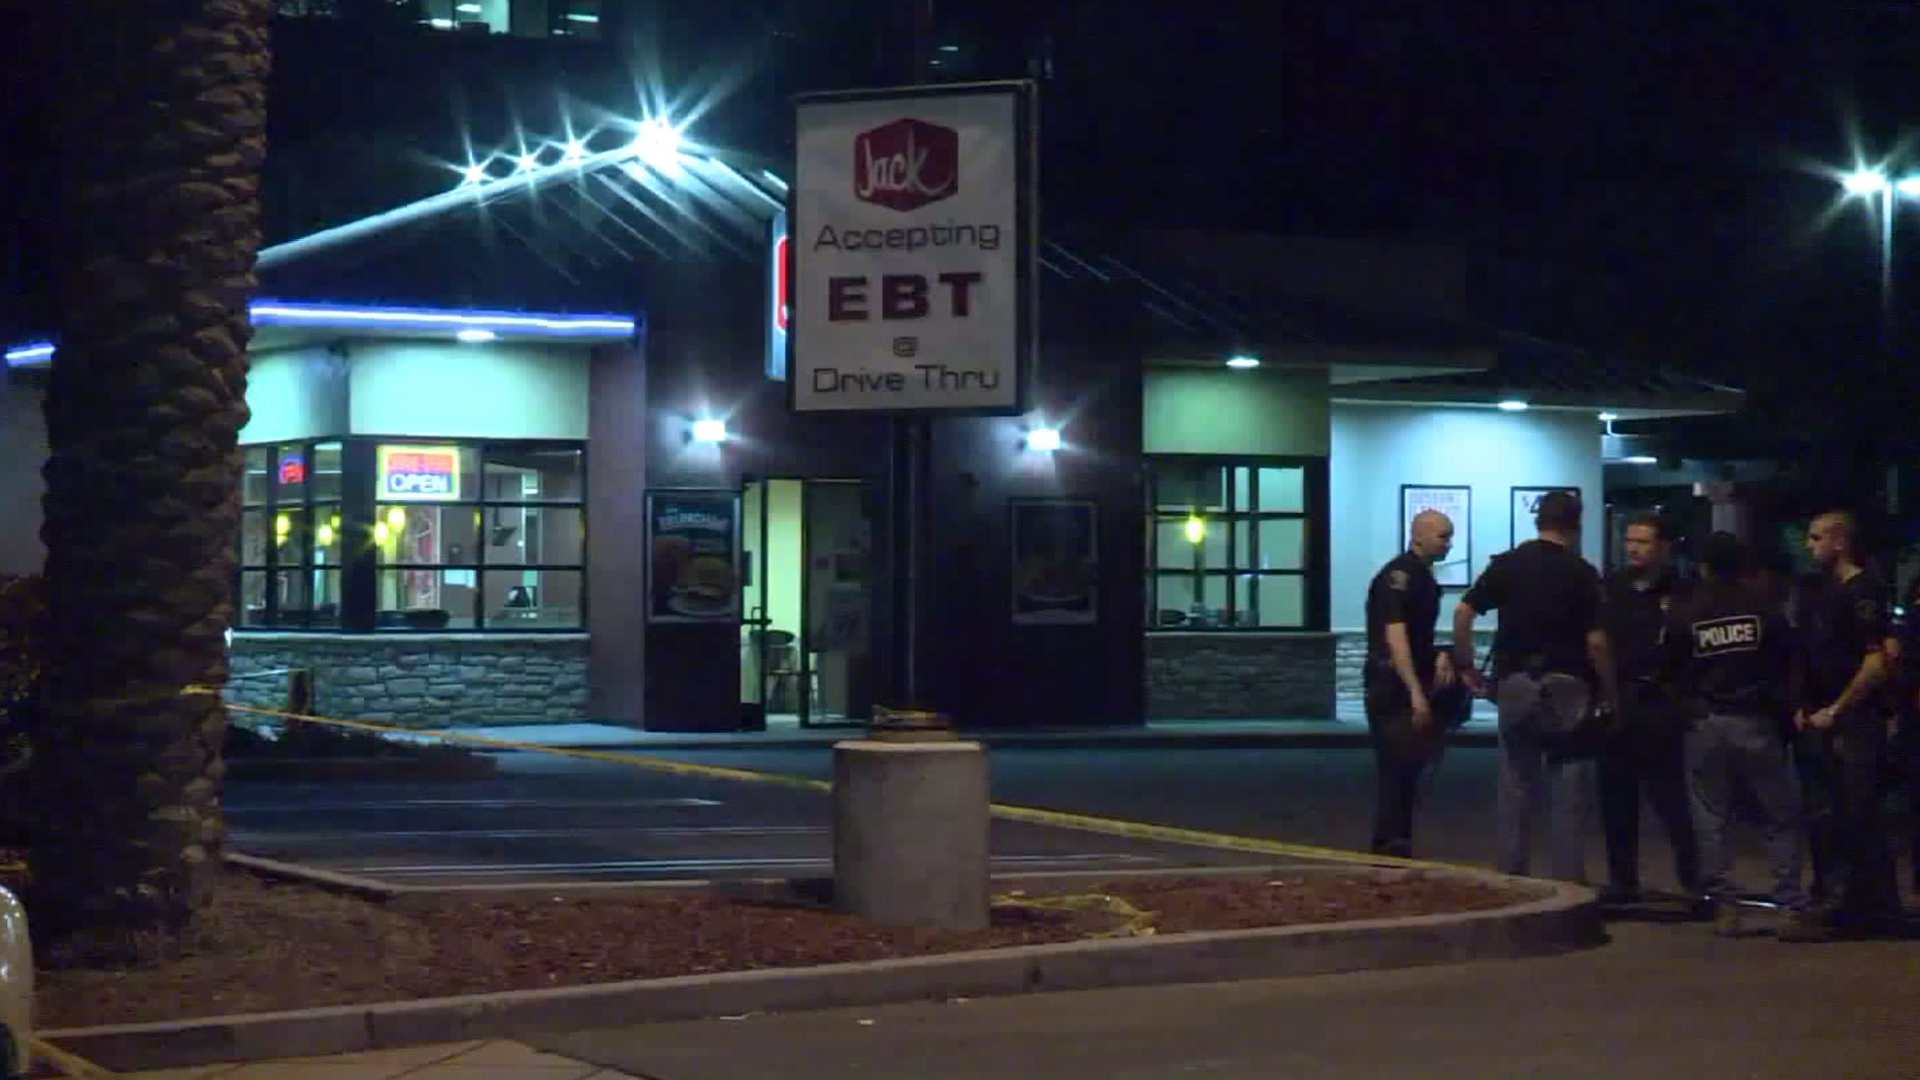 An employee at the Jack in the Box in El Monte was fatally shot on Oct. 21, 2016. (Credit: KTLA)